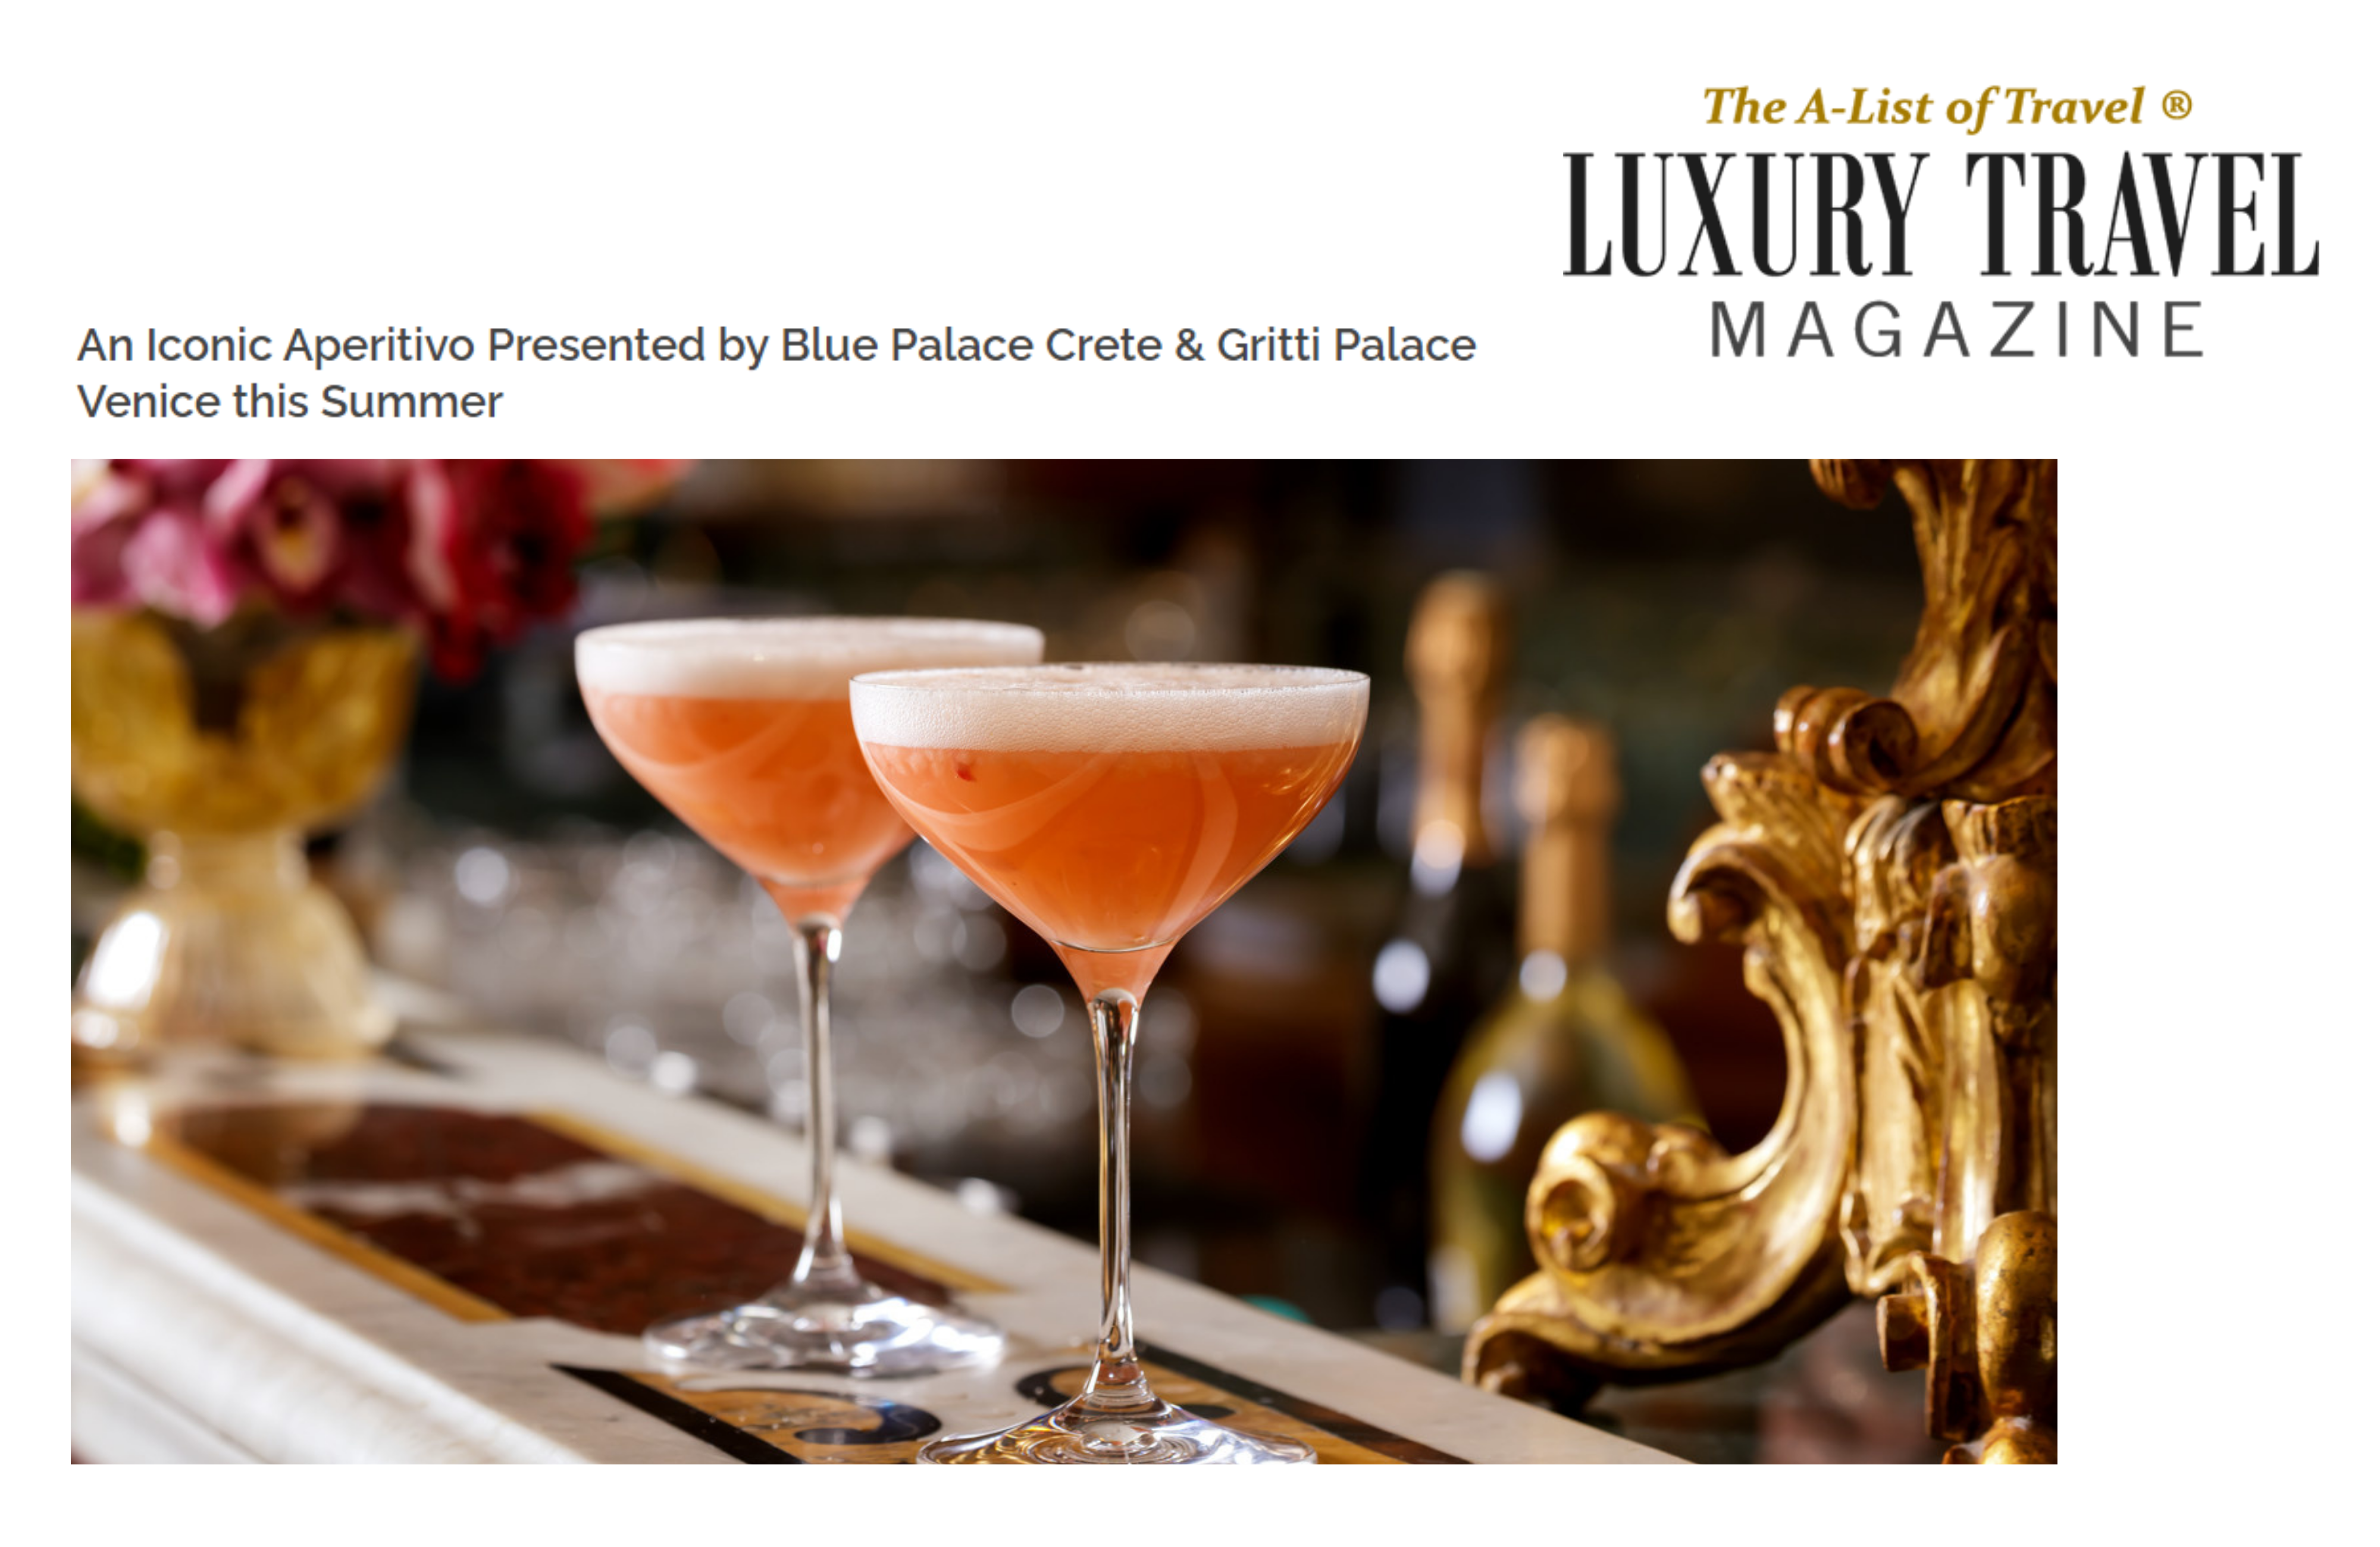 Blue Palace X Gritti Palace Collaboration Announcement By Luxury Travel Magazine